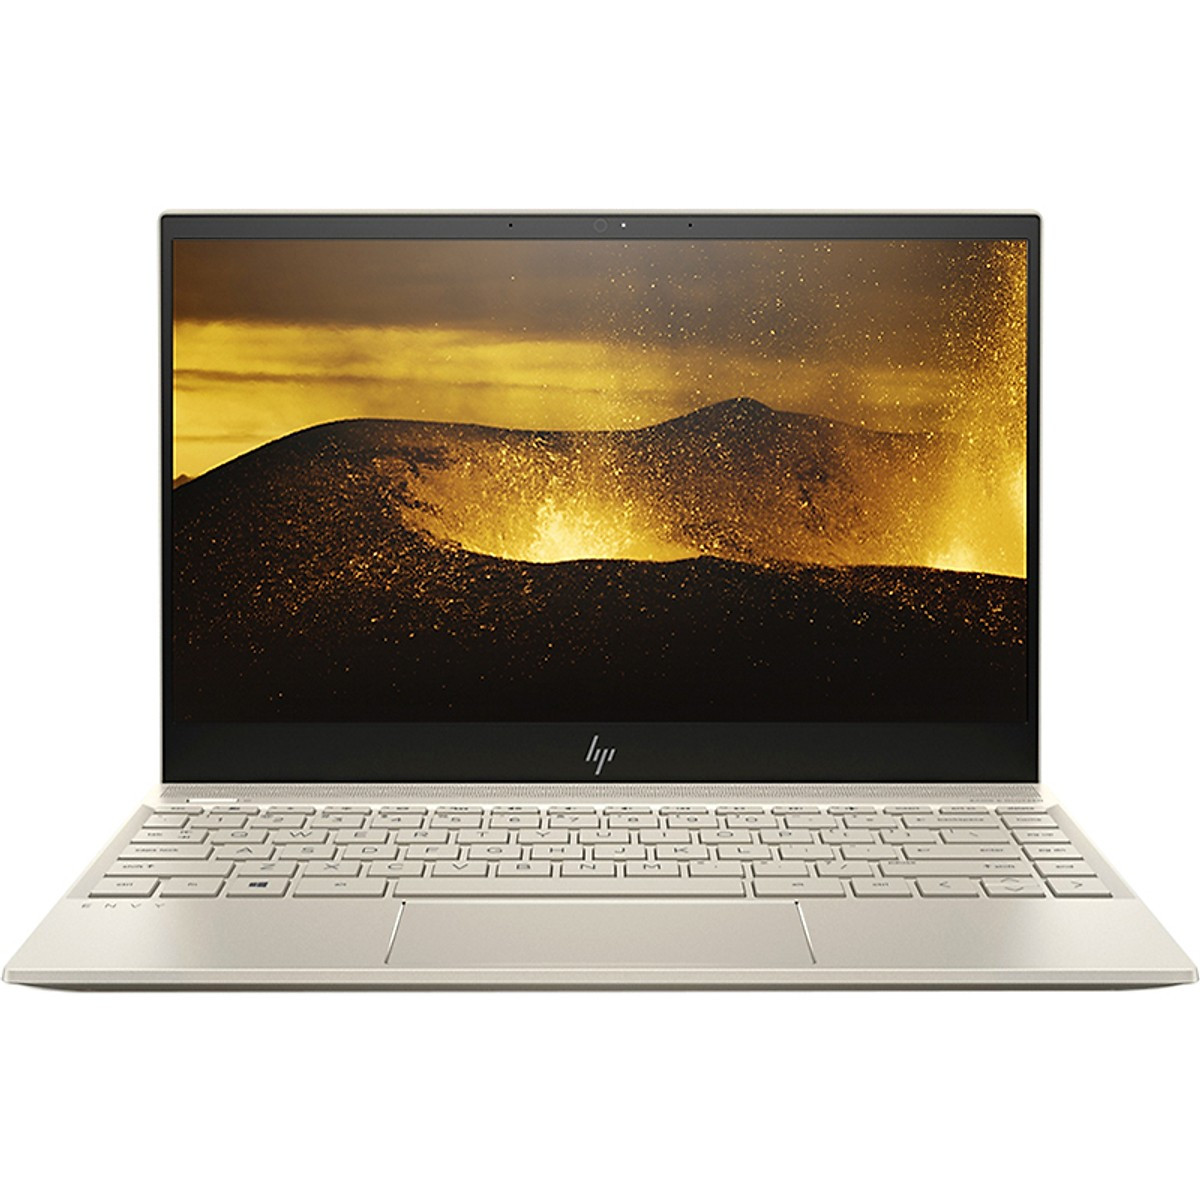 Laptop HP Envy 13 (i5/8GB/256GB)